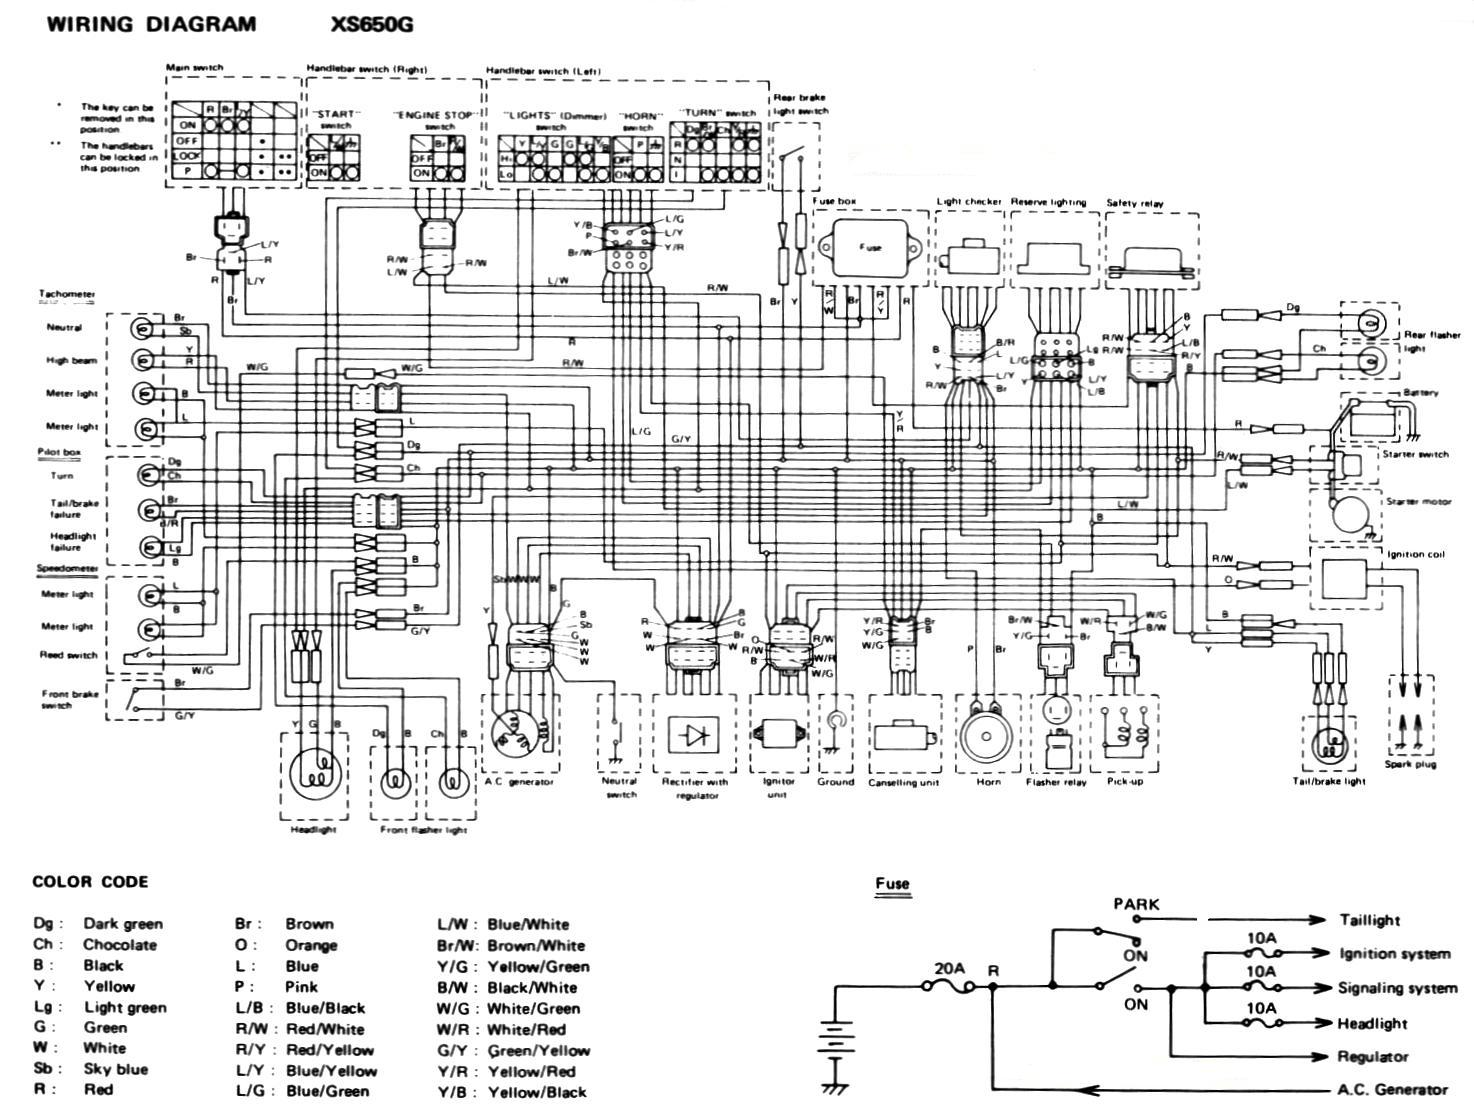 80XS650G wiring diagrams  at eliteediting.co